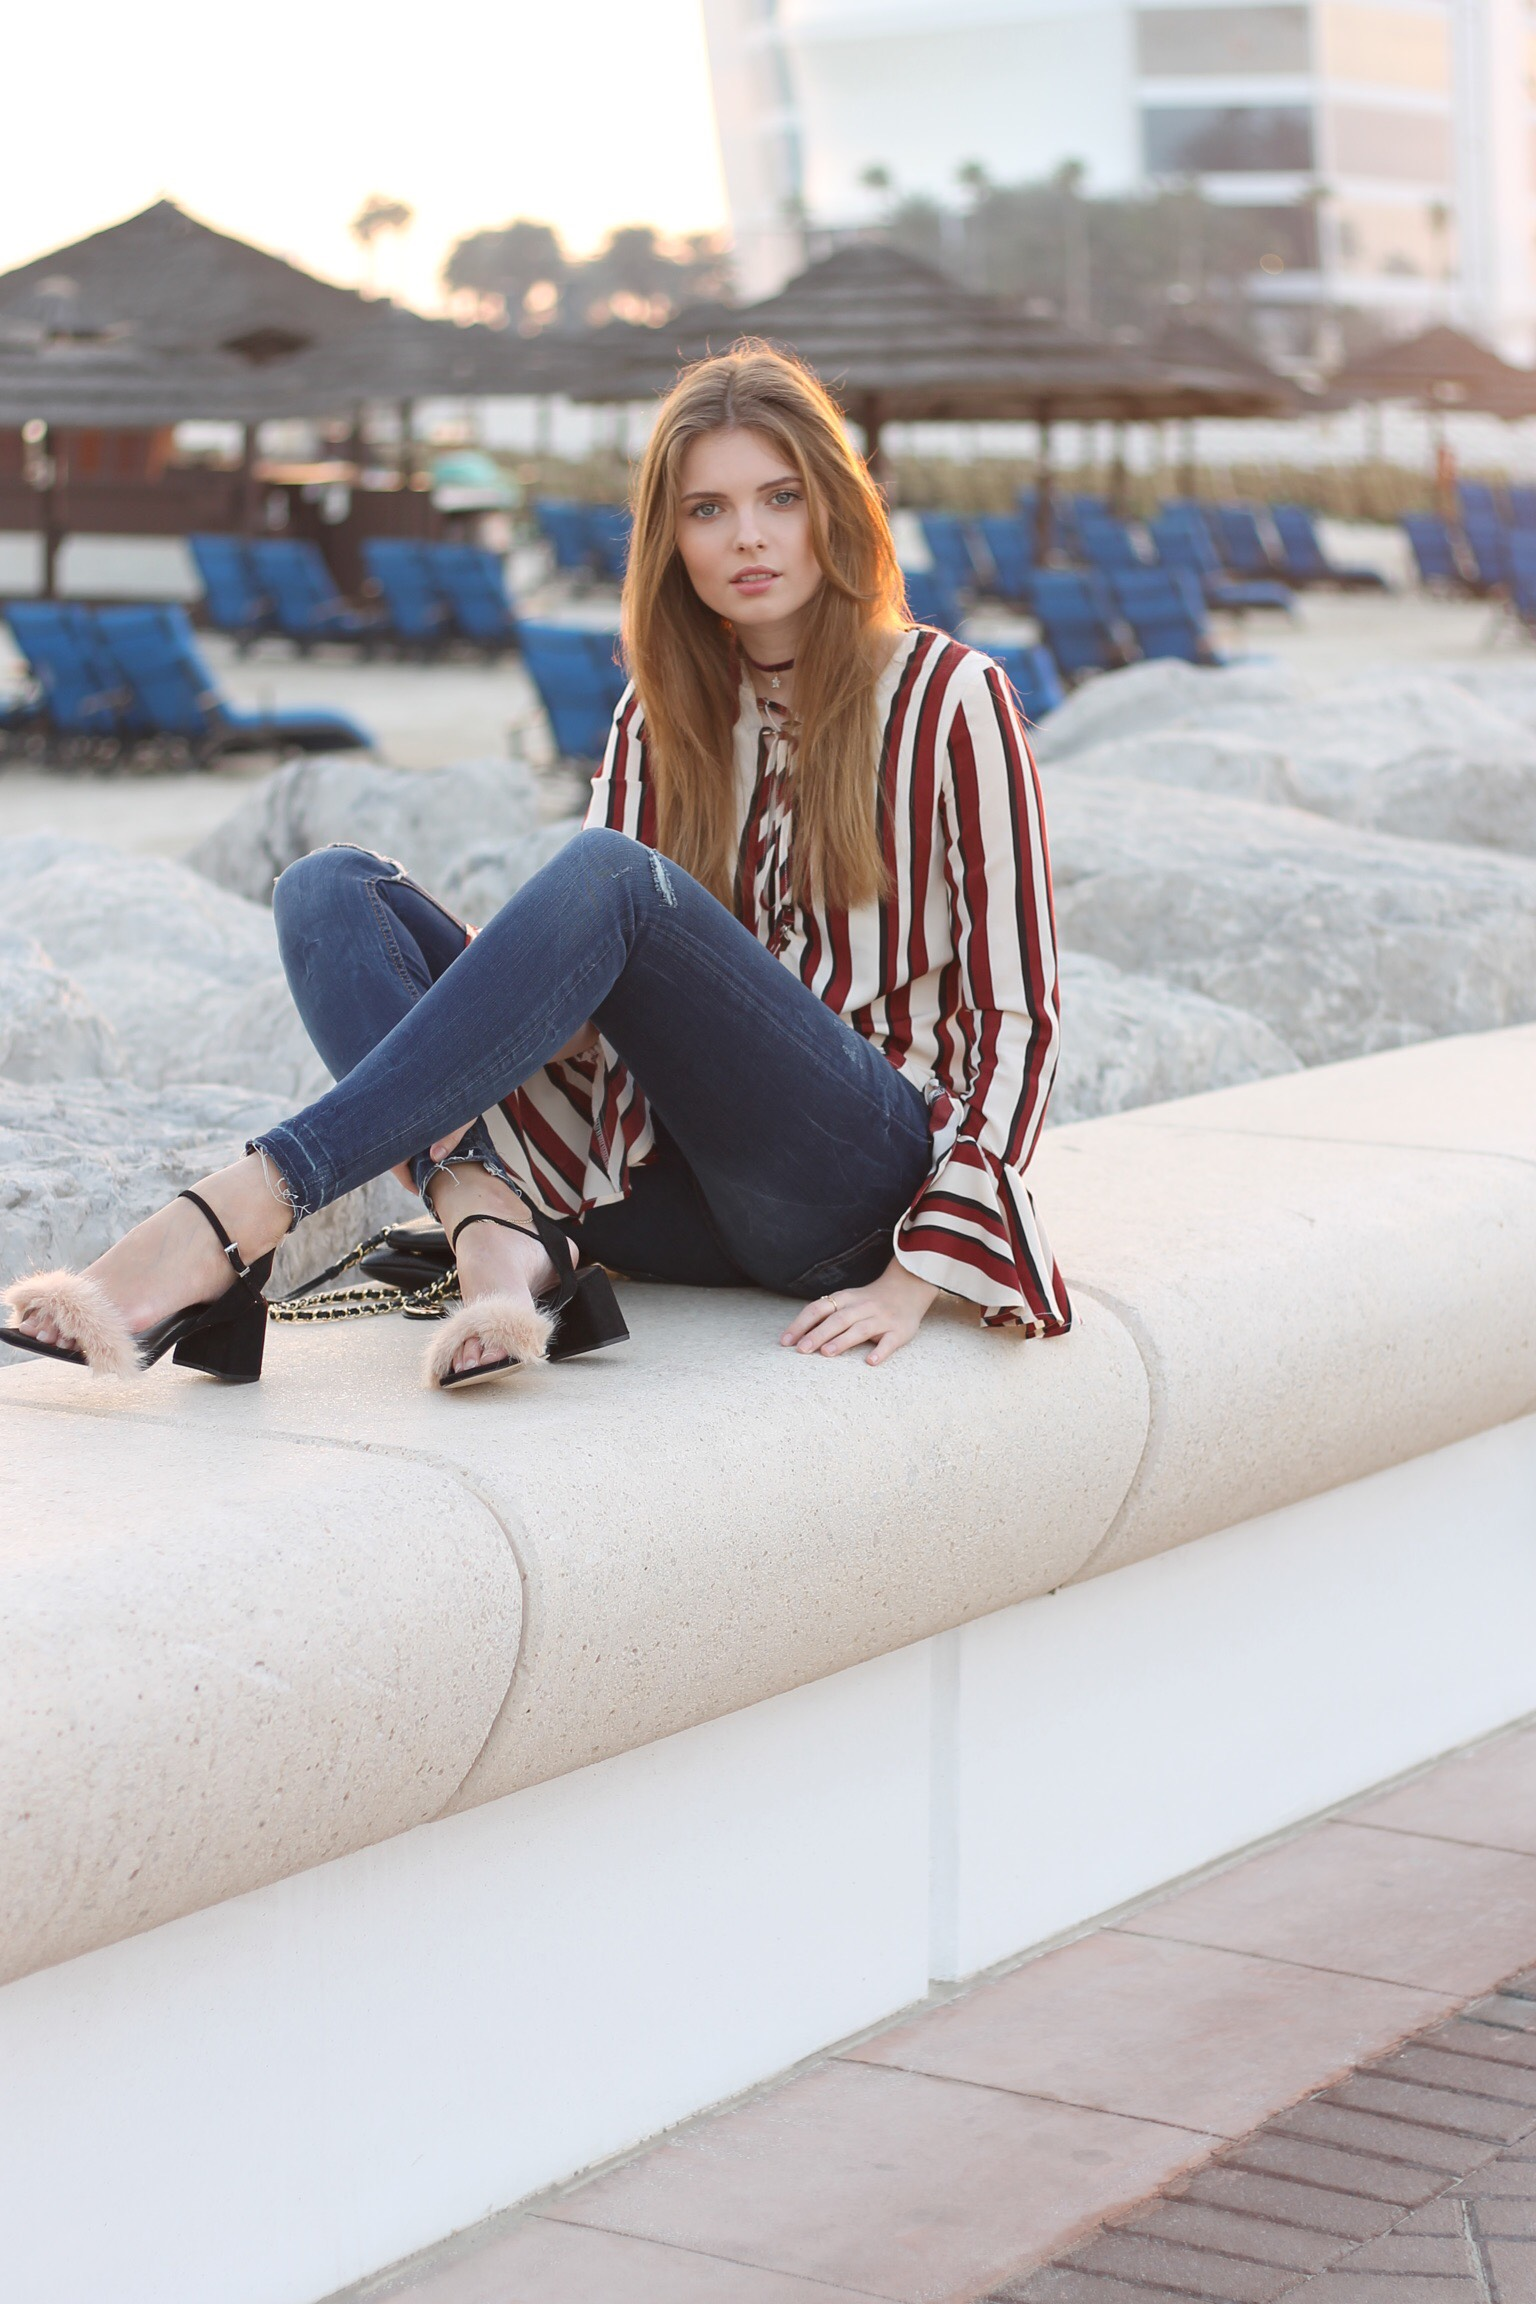 file81 - STRIPED BLOUSE OUTFIT IN DUBAI